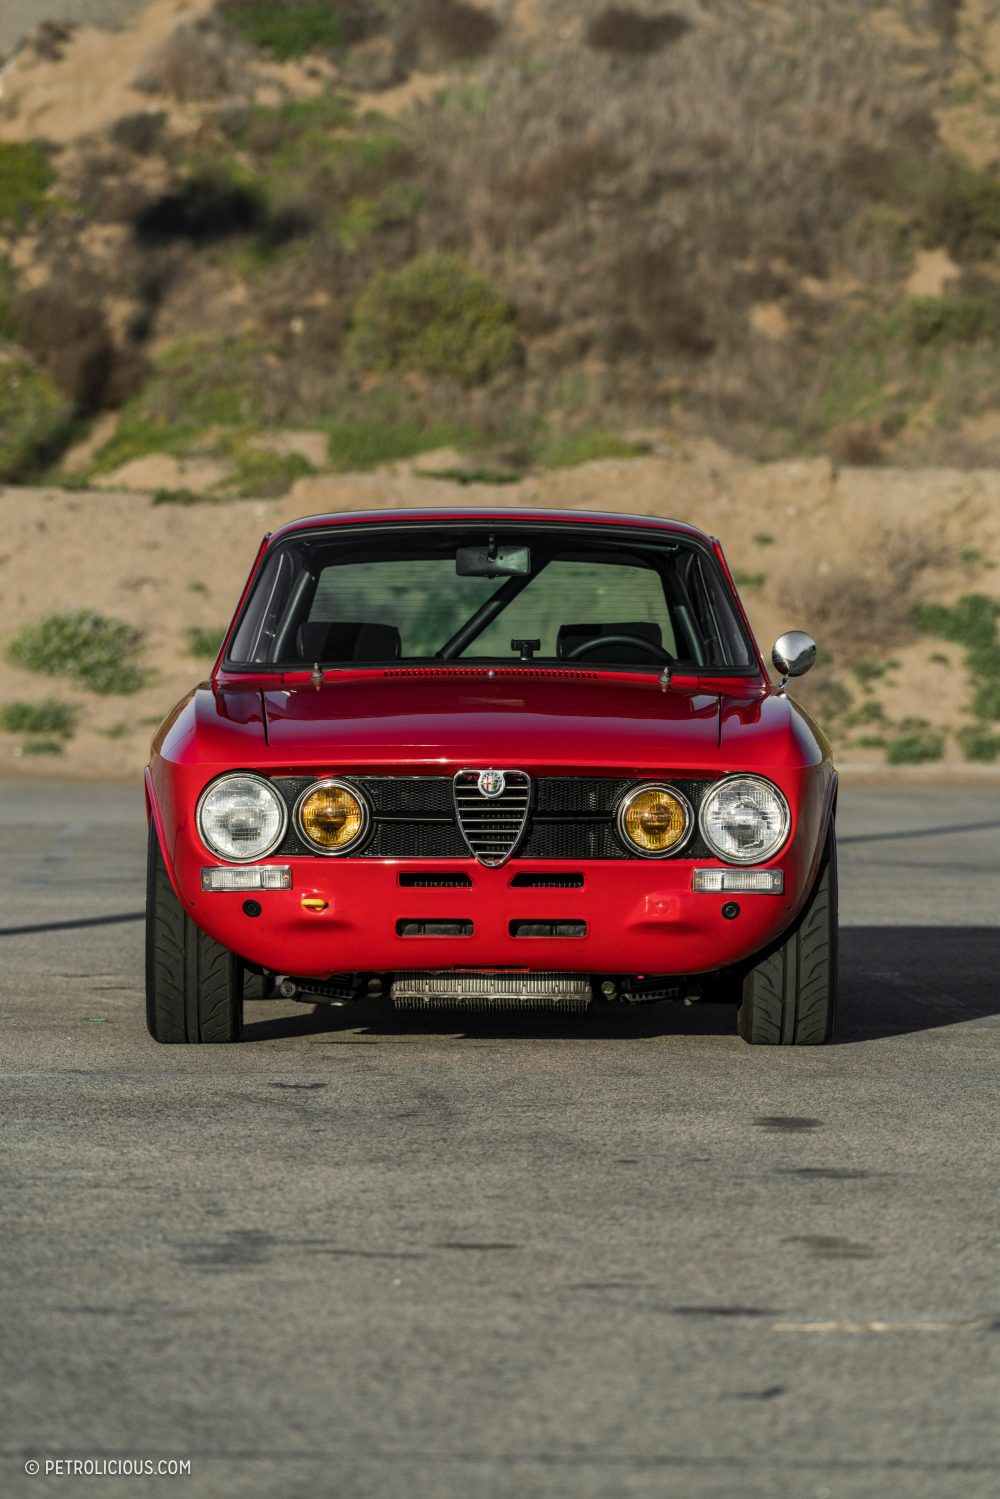 GALLERY: Go Behind The Scenes On Our 1973 Alfa Romeo GTV